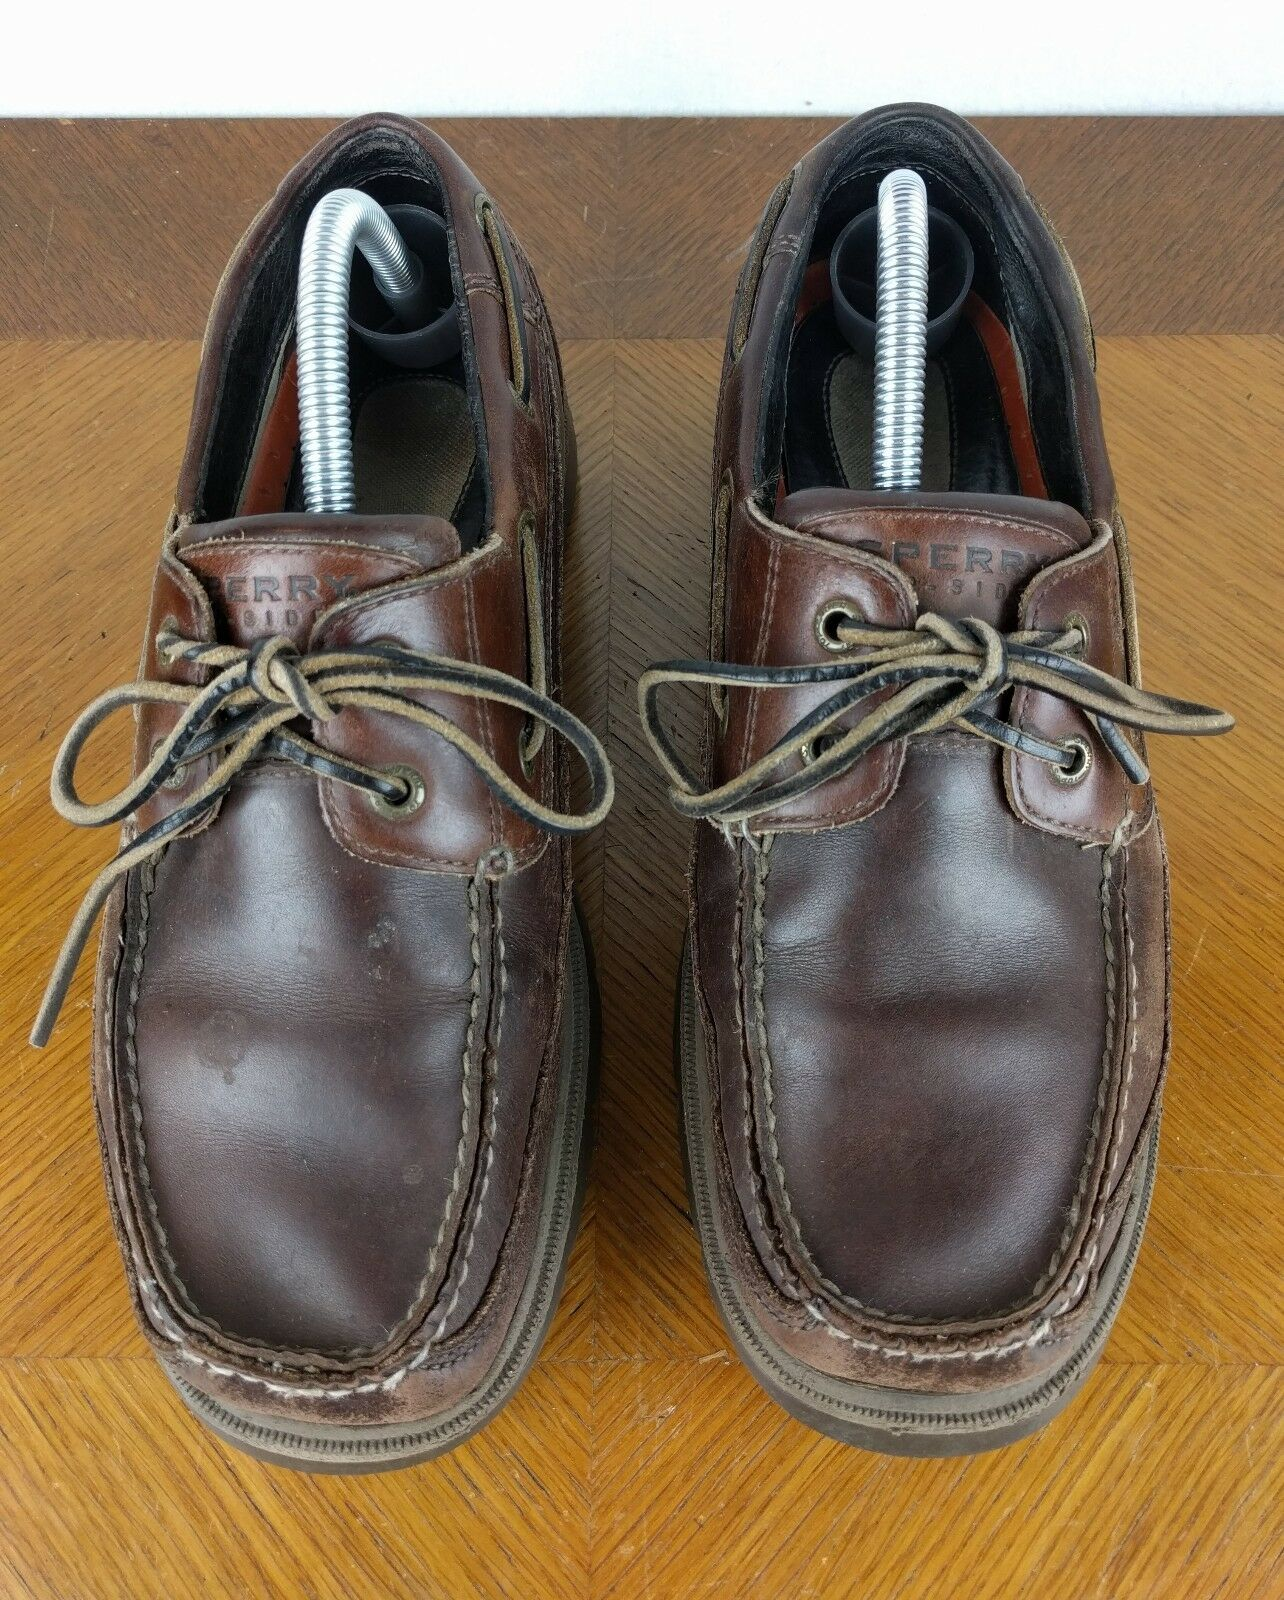 Sperry Top Sider Boat Dark Braun Schuhes M  Uomo Größe 9.5 M Schuhes Leder Lace Up Loafers e3fb06